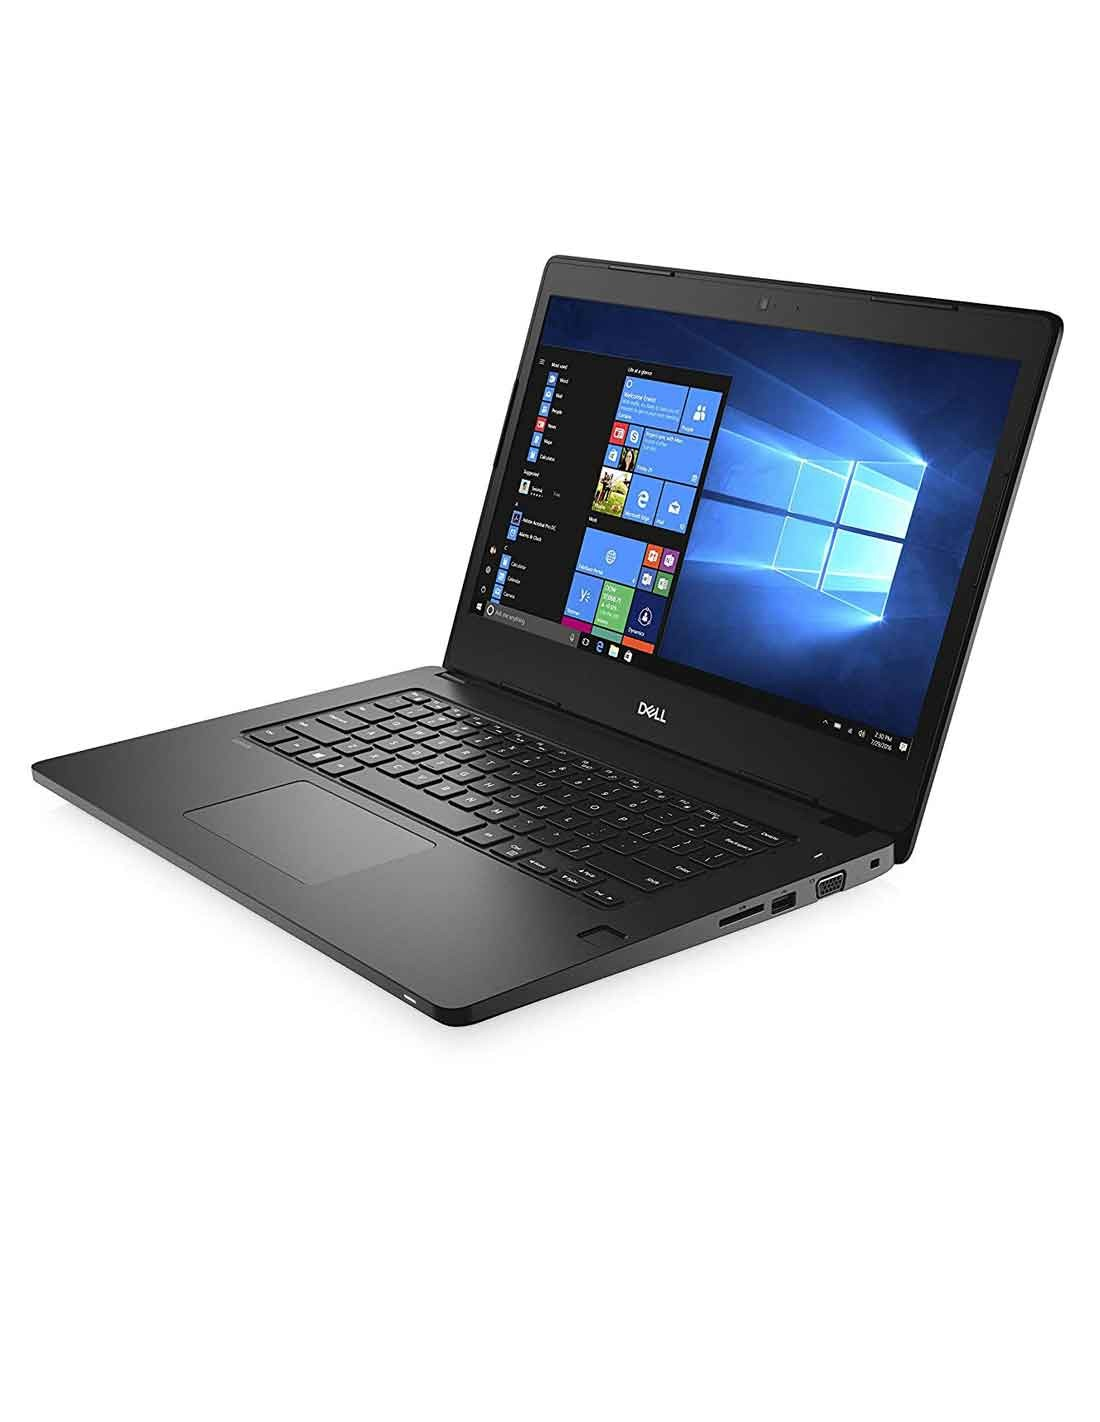 Dell Latitude 3480 images and photos in Dubai computer store